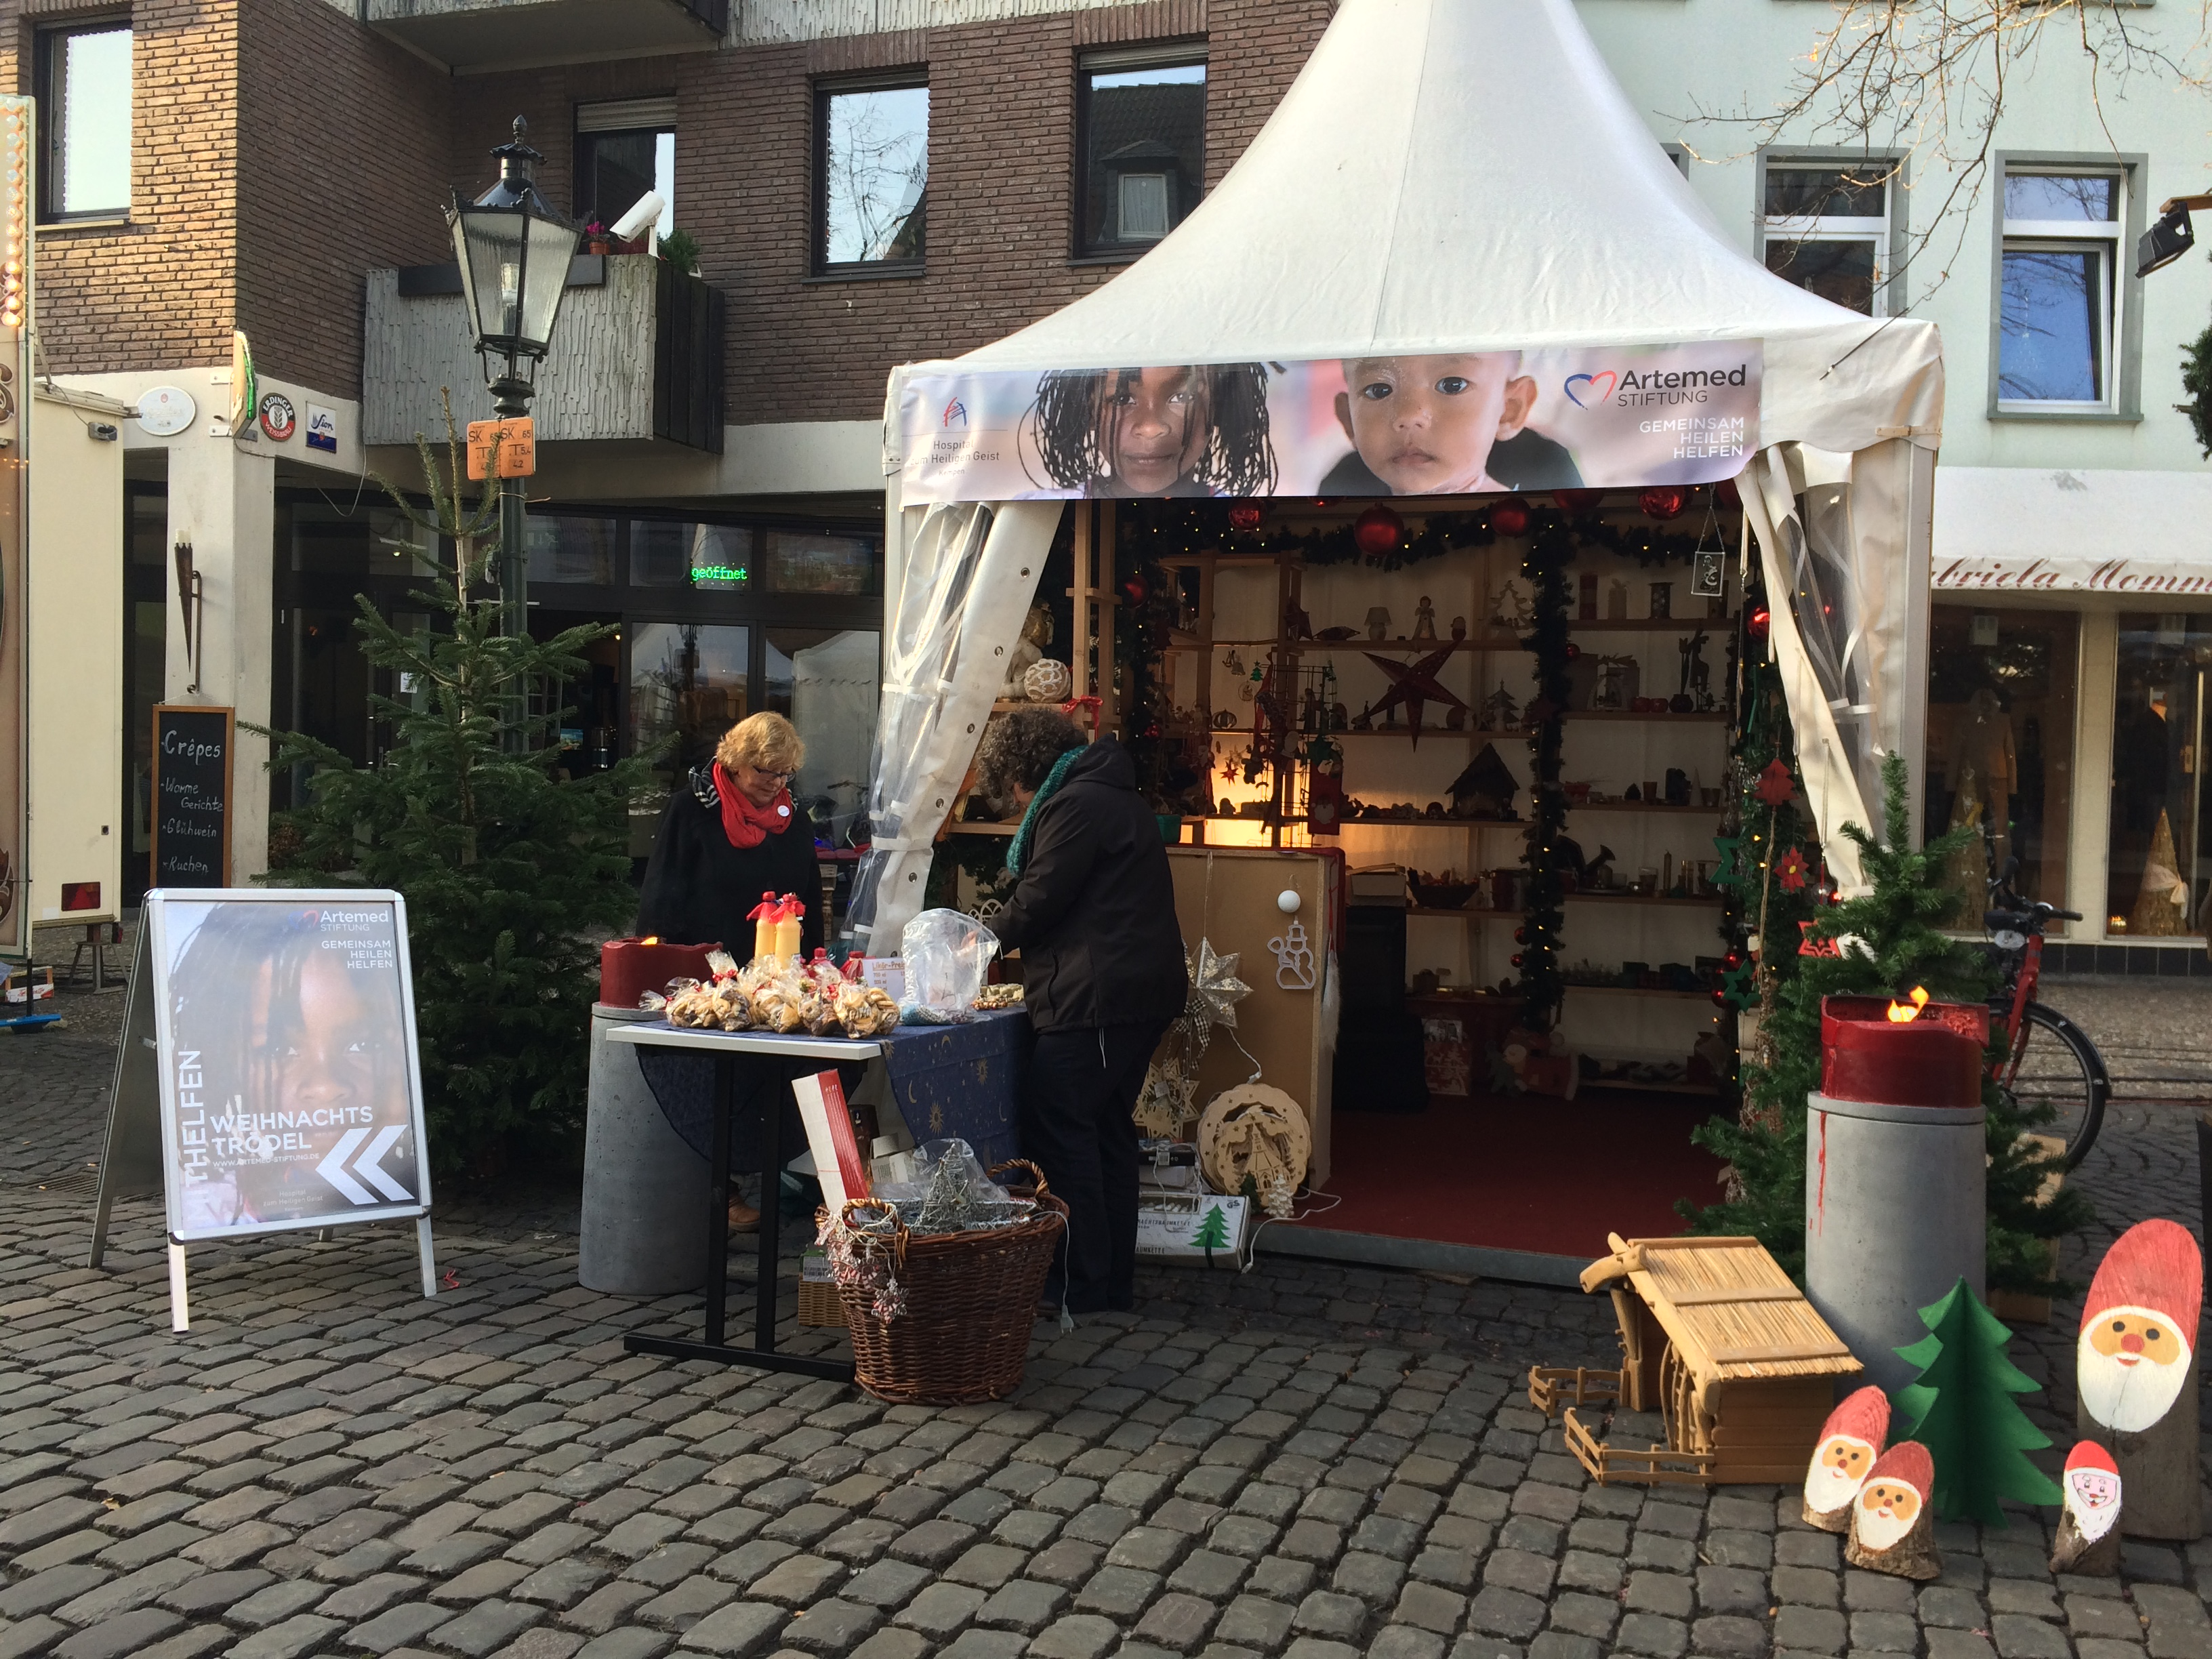 Weihnachtsmarkt Kempen.Weihnachtsmarkt Kempen Artemed Stiftung